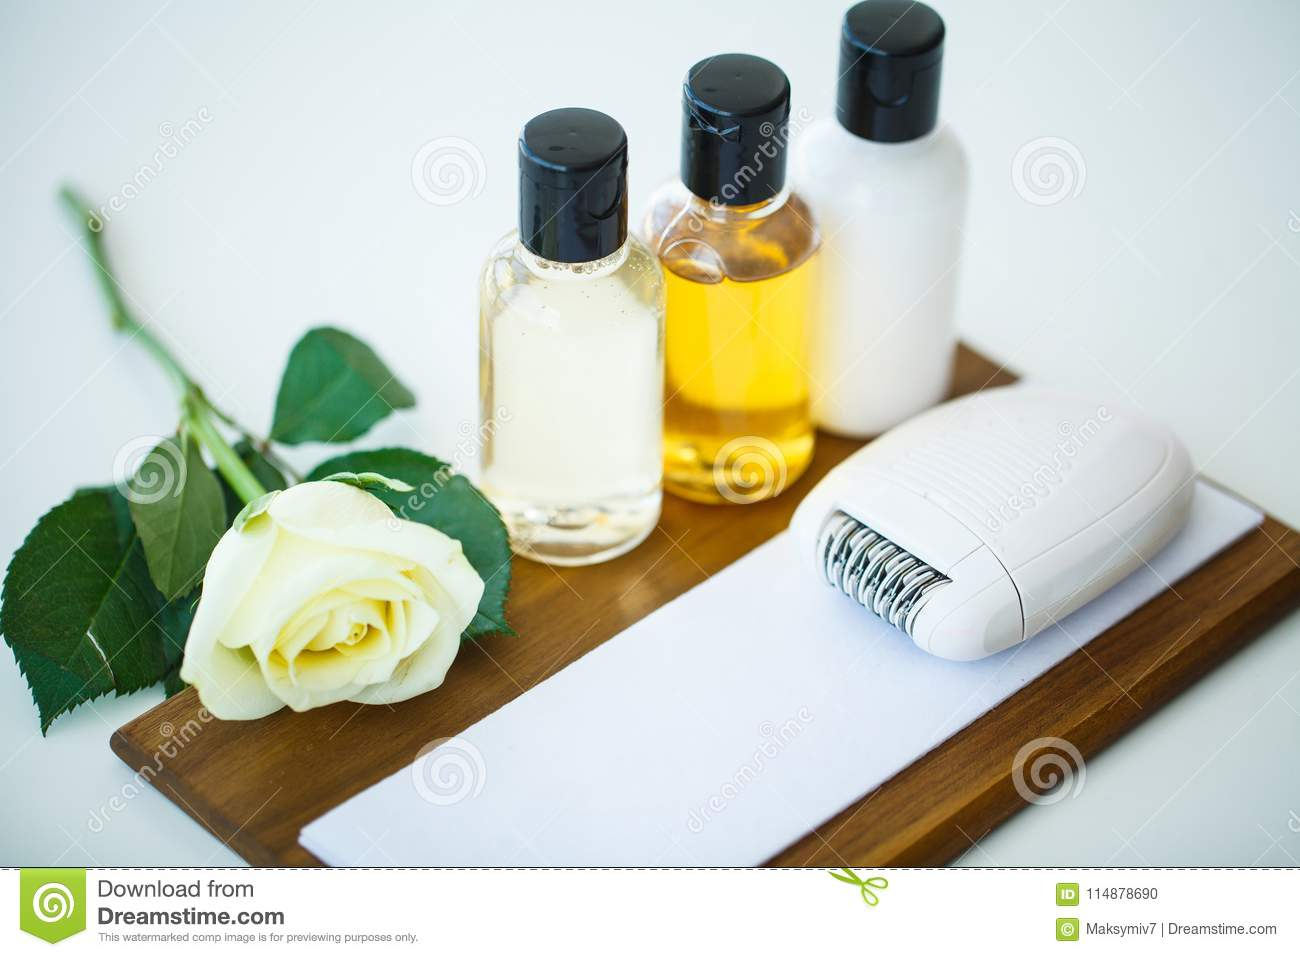 Handmade Soap And Aroma Oil With White Flower Spa Products Stock